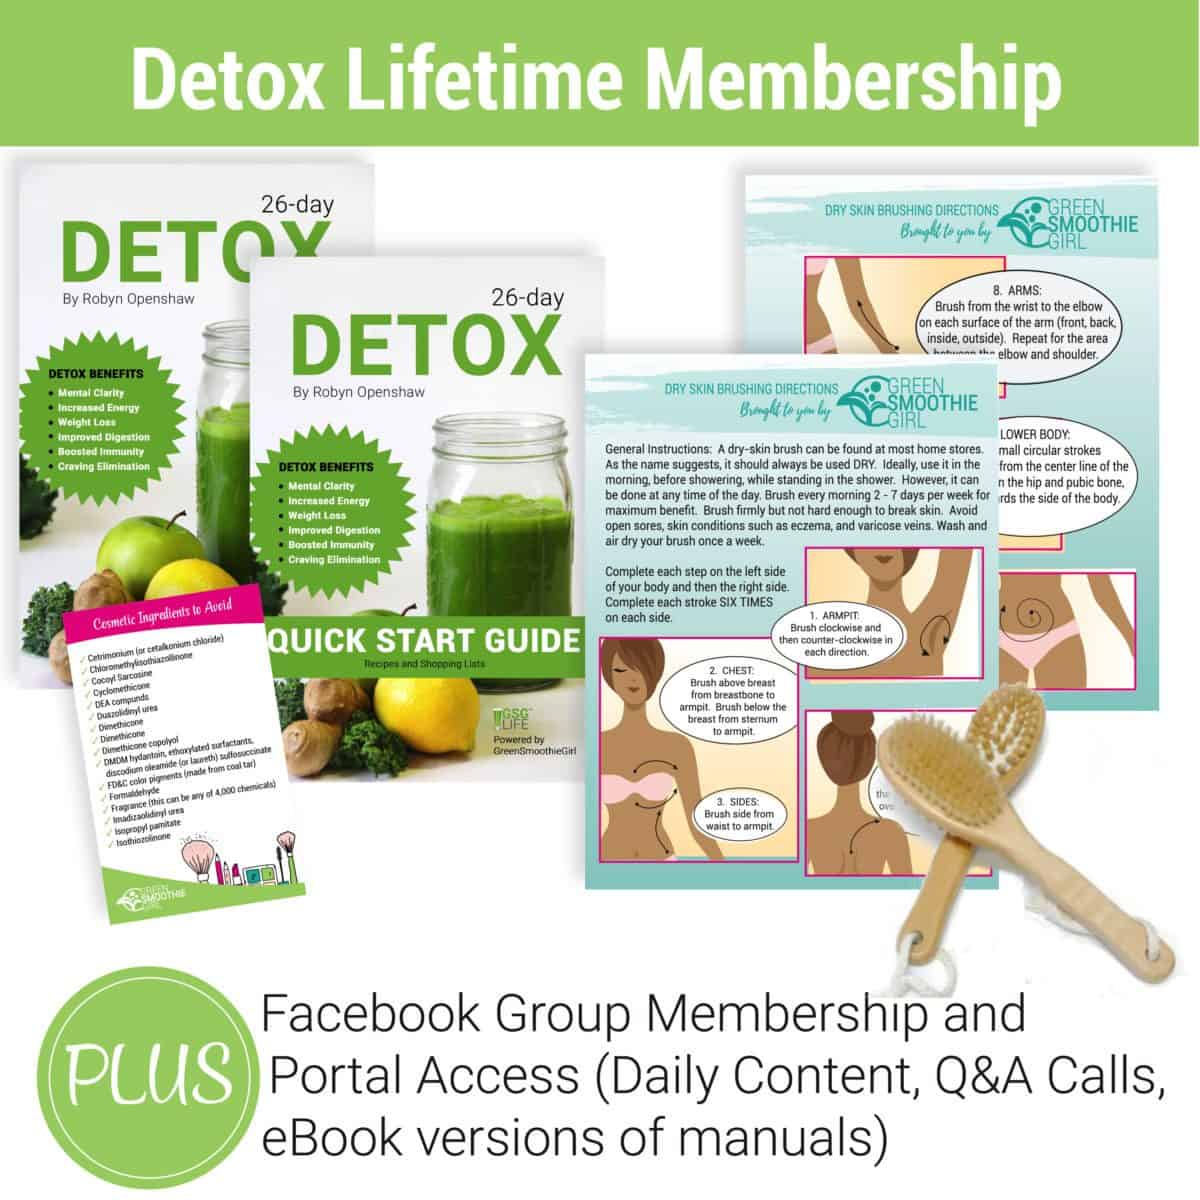 Detox Lifetime Membership